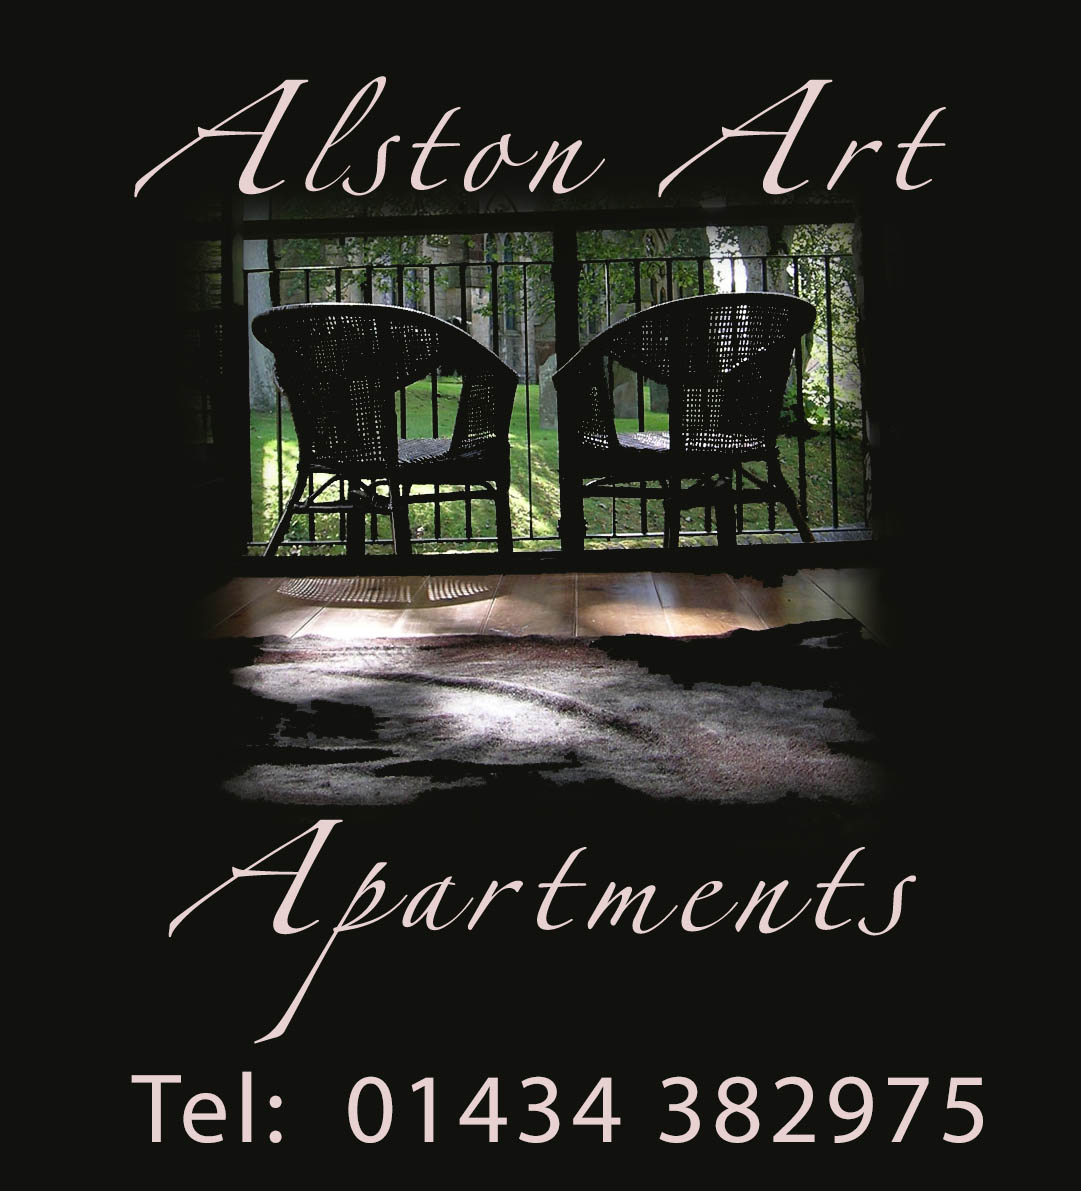 Art Apartments Salston